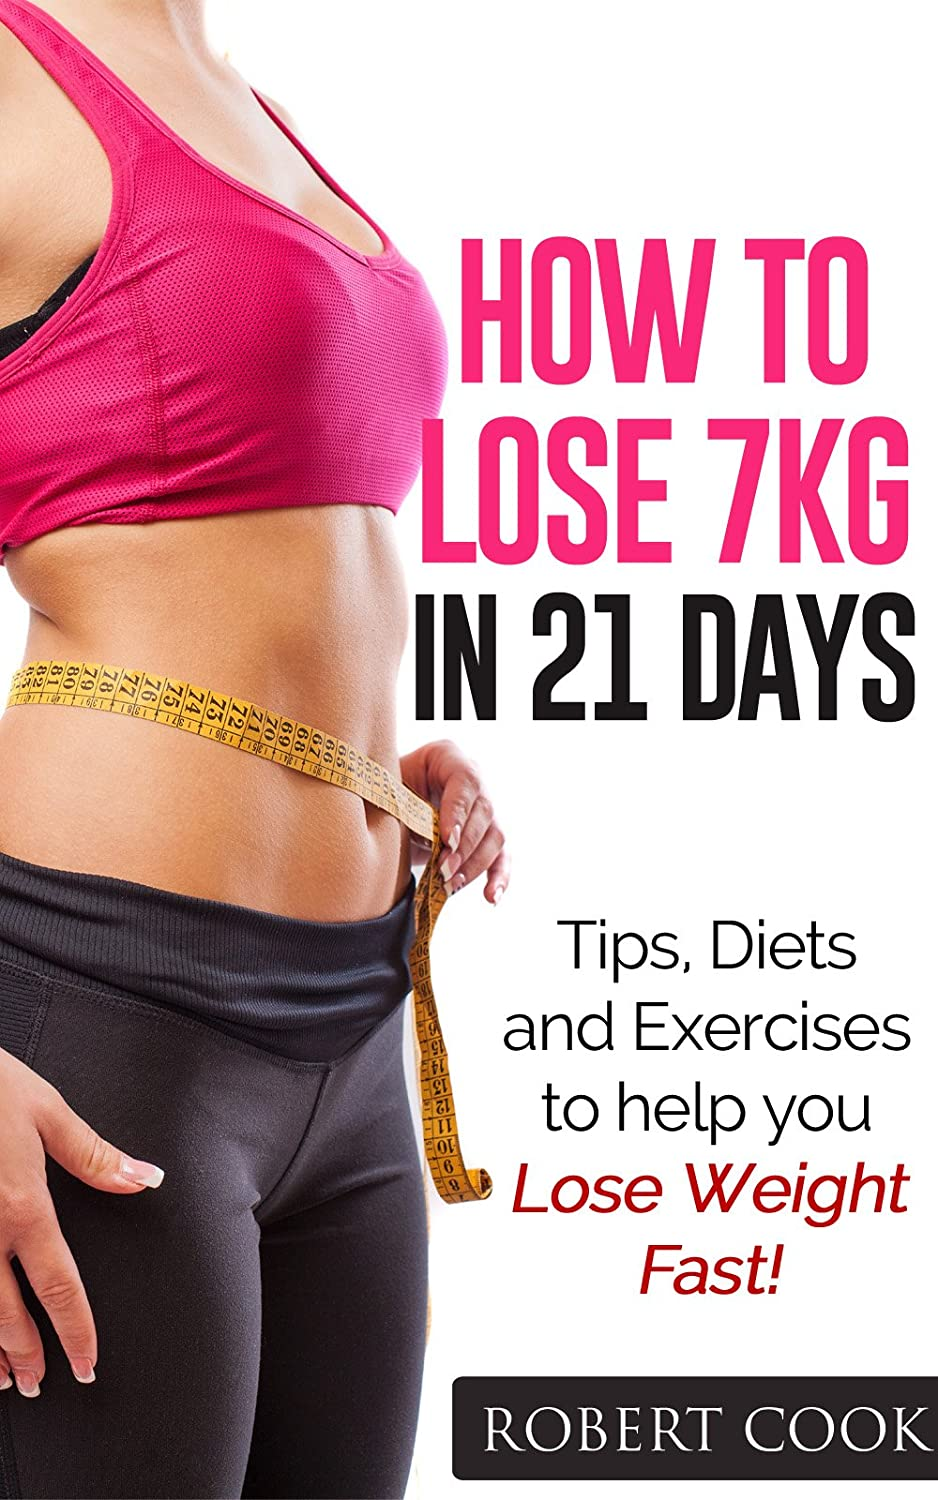 How To Lose 7kg In 21 Days Tips Diets And Exercises To